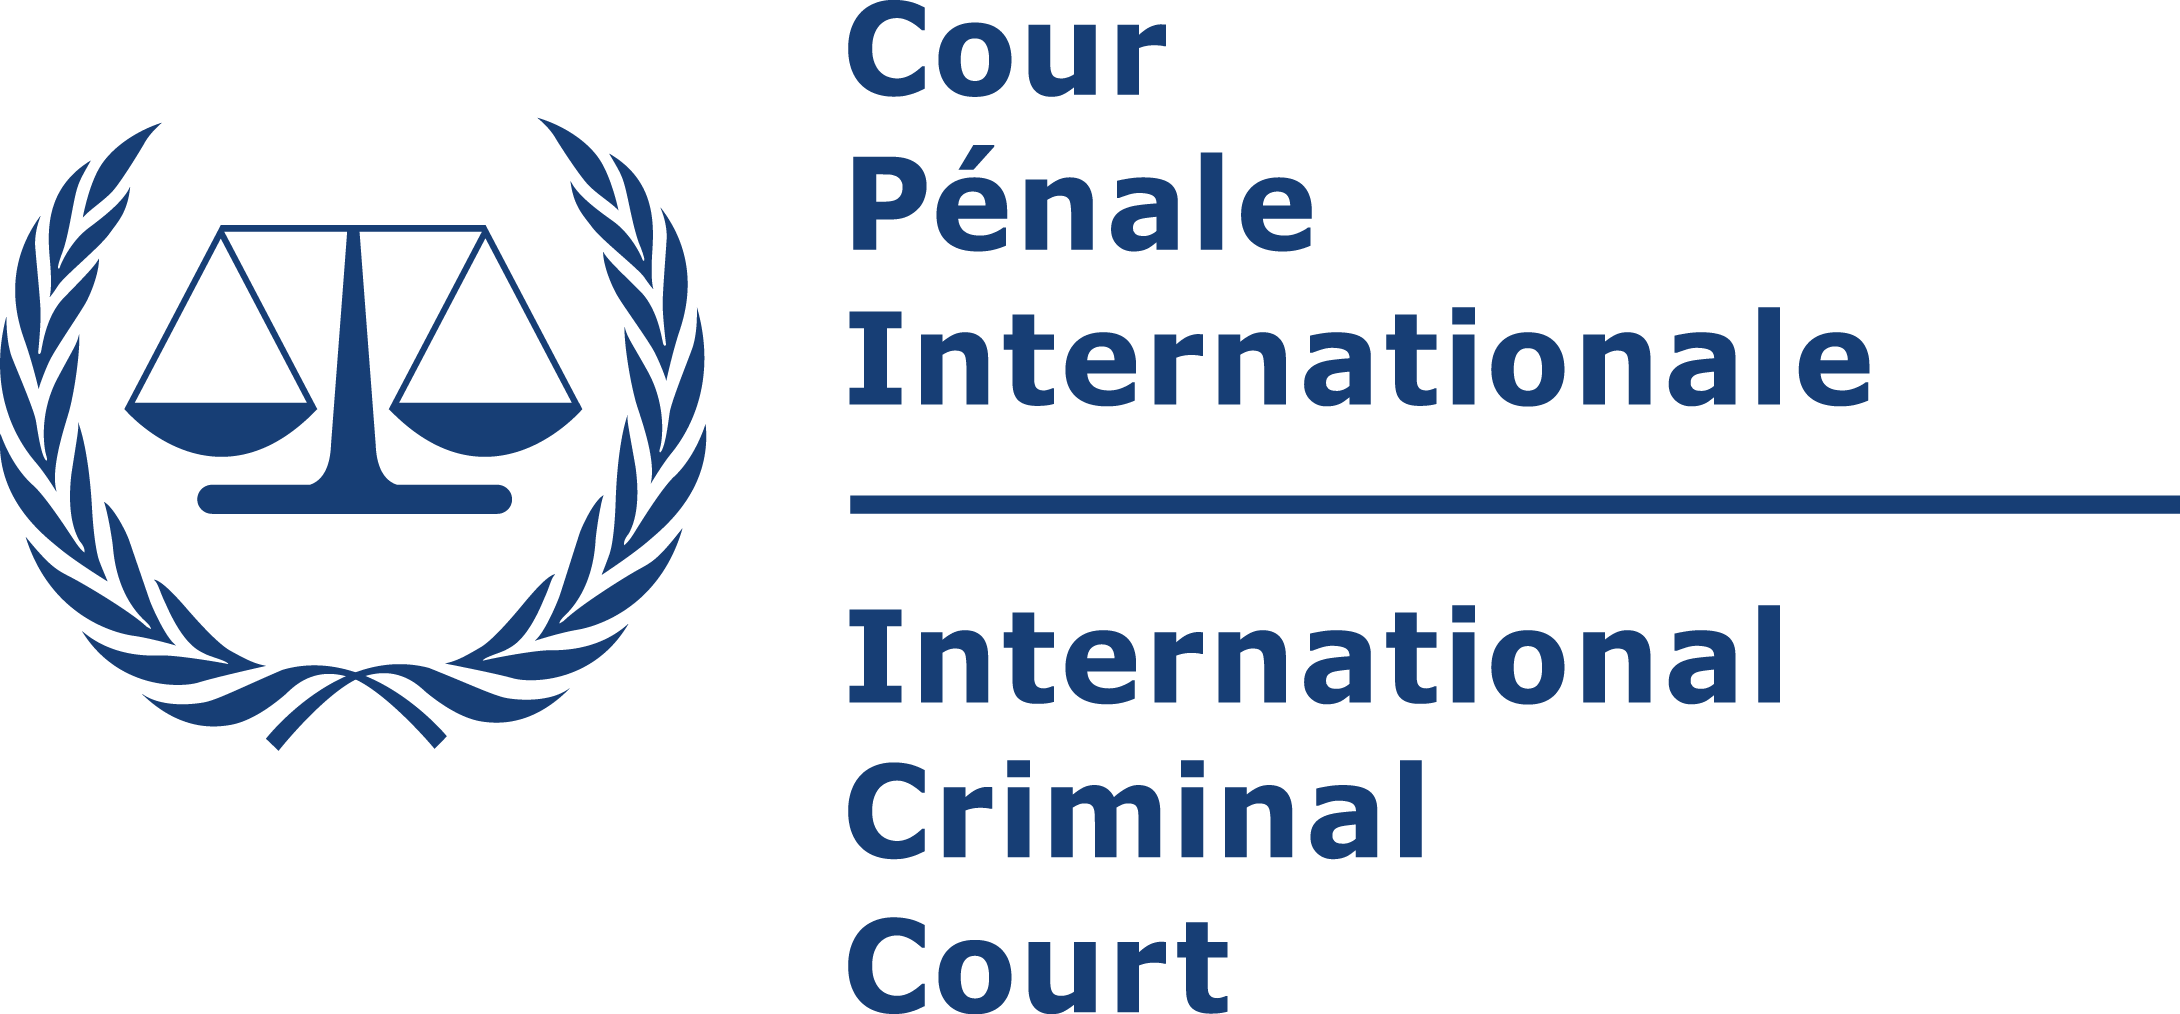 ICC   International Criminal Court Logo [icc cpi.int] png